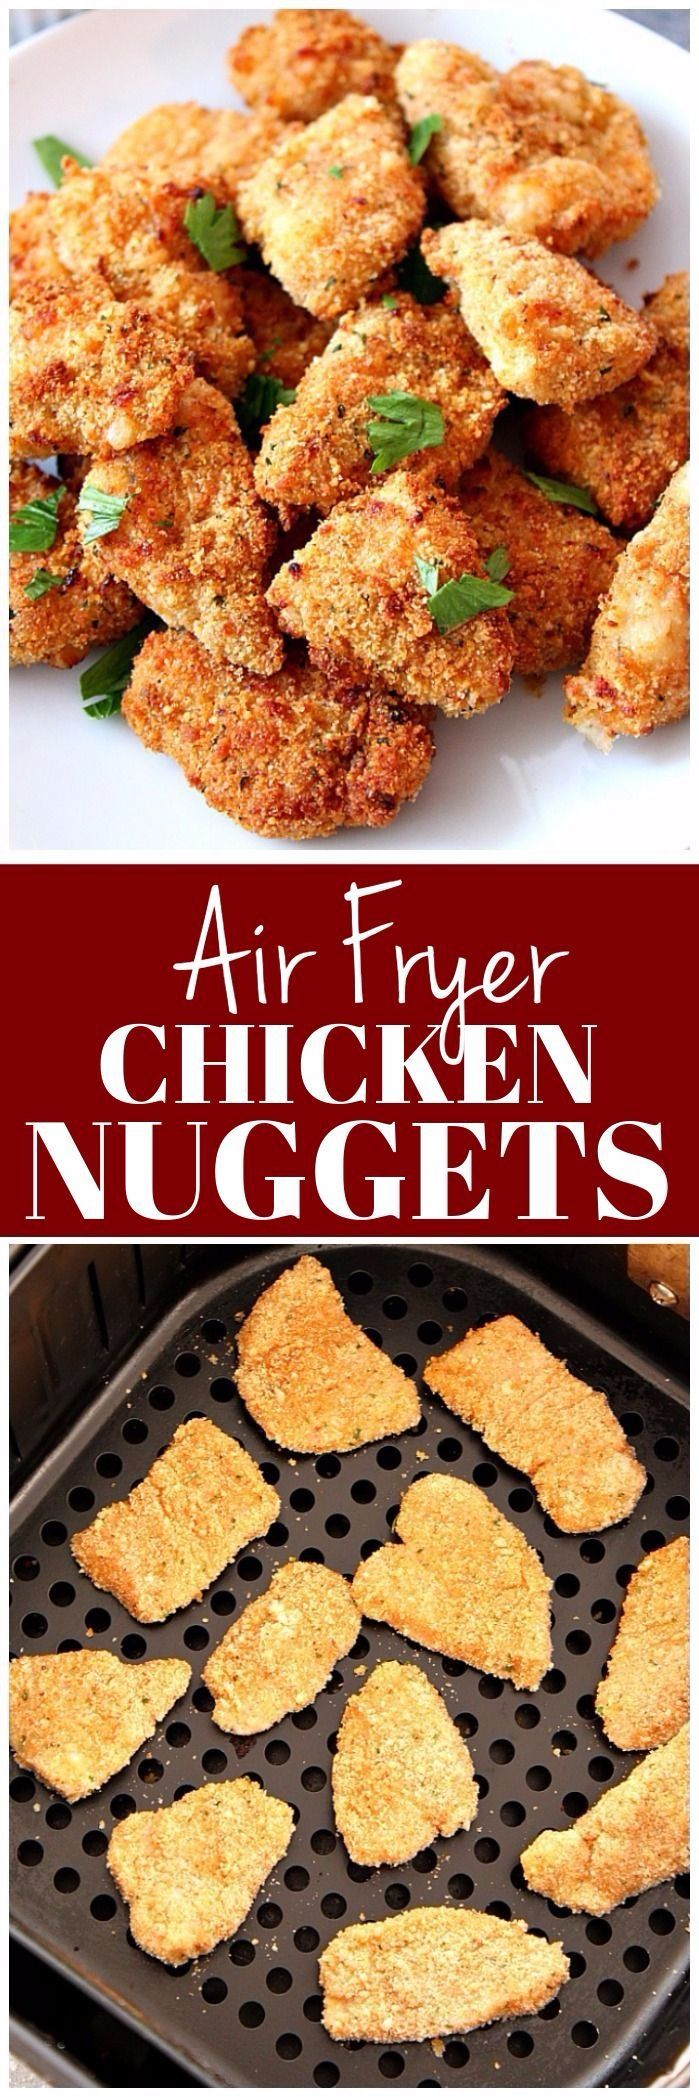 Air Fryer Chicken Nuggets Recipe healthier option for a